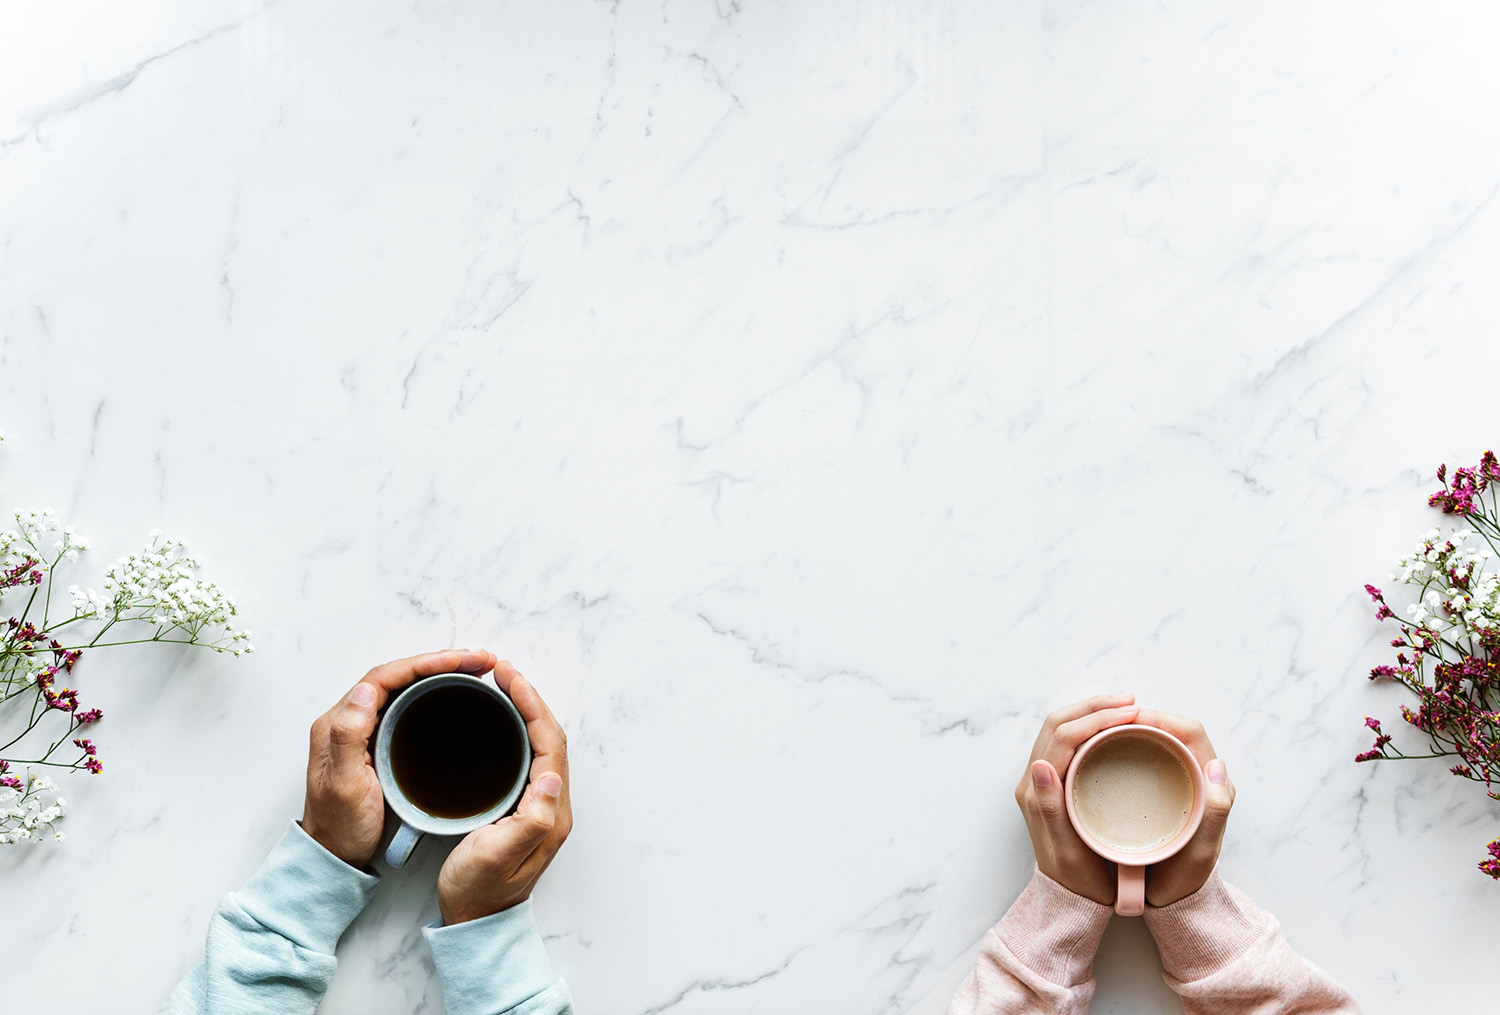 cup holding couple-lowres.jpg